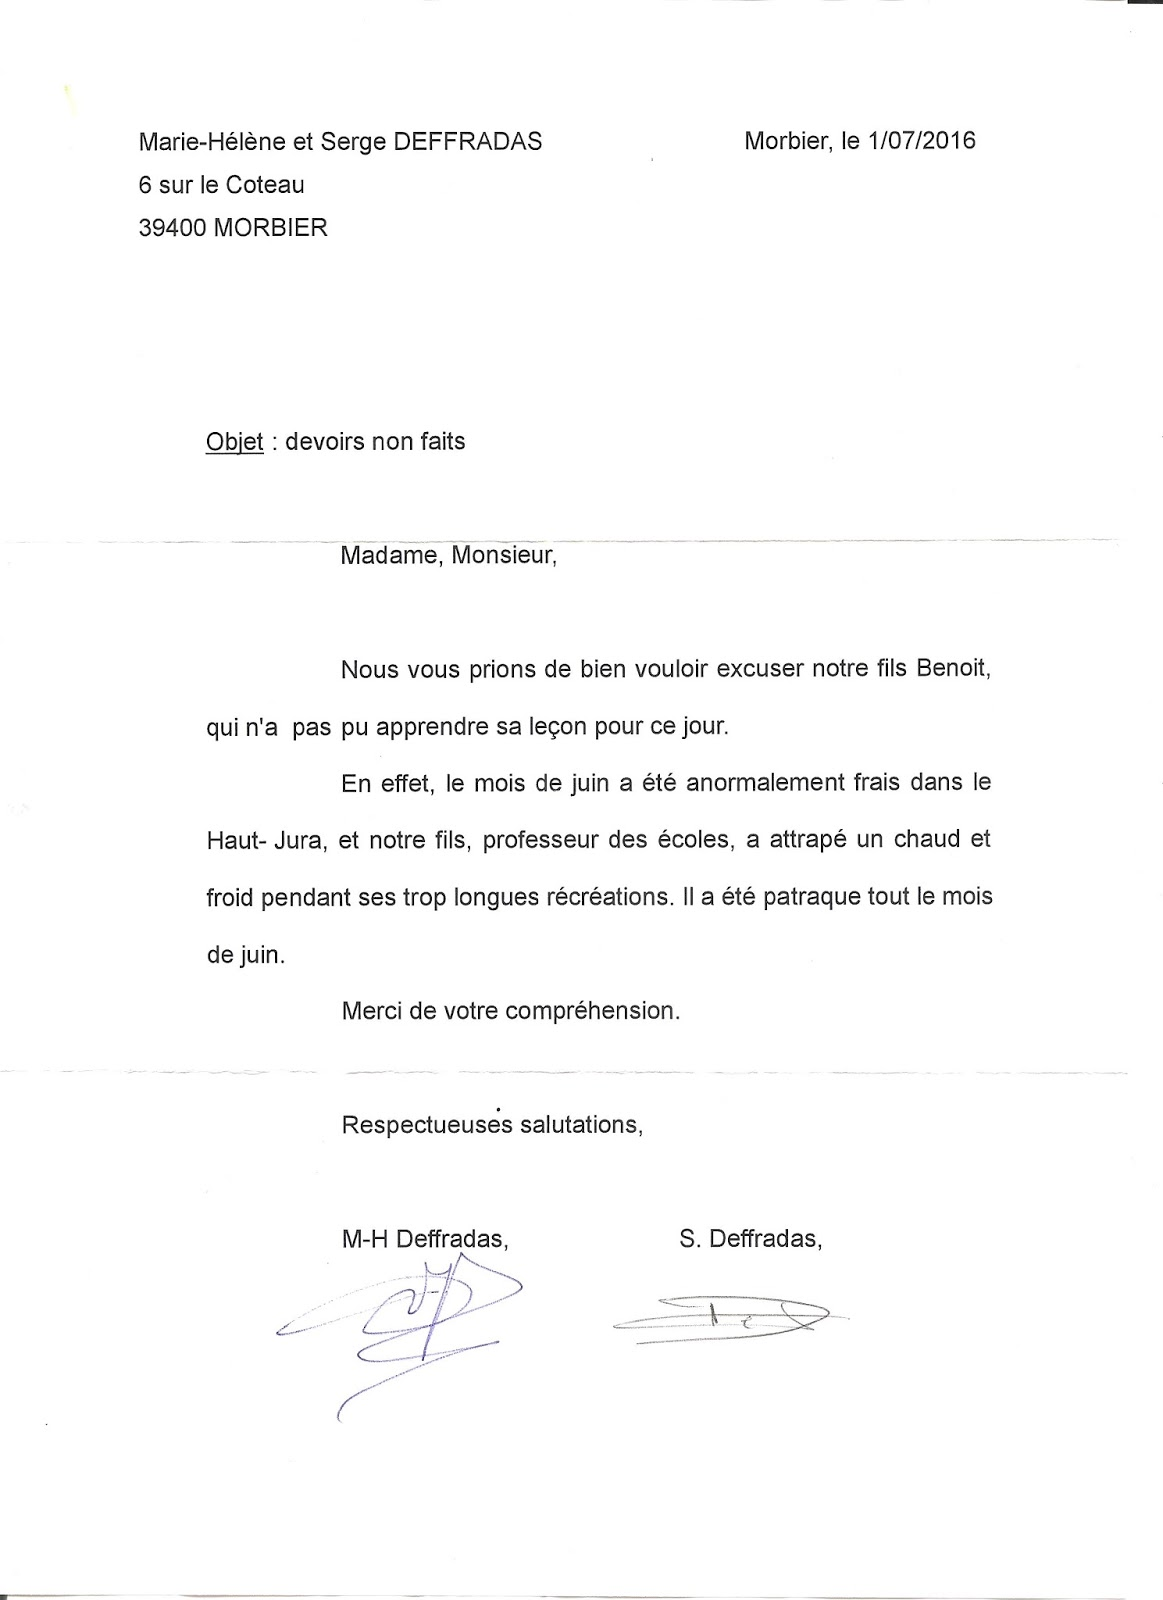 Epub lettre d excuse pour absence - Achat immobilier islam ...